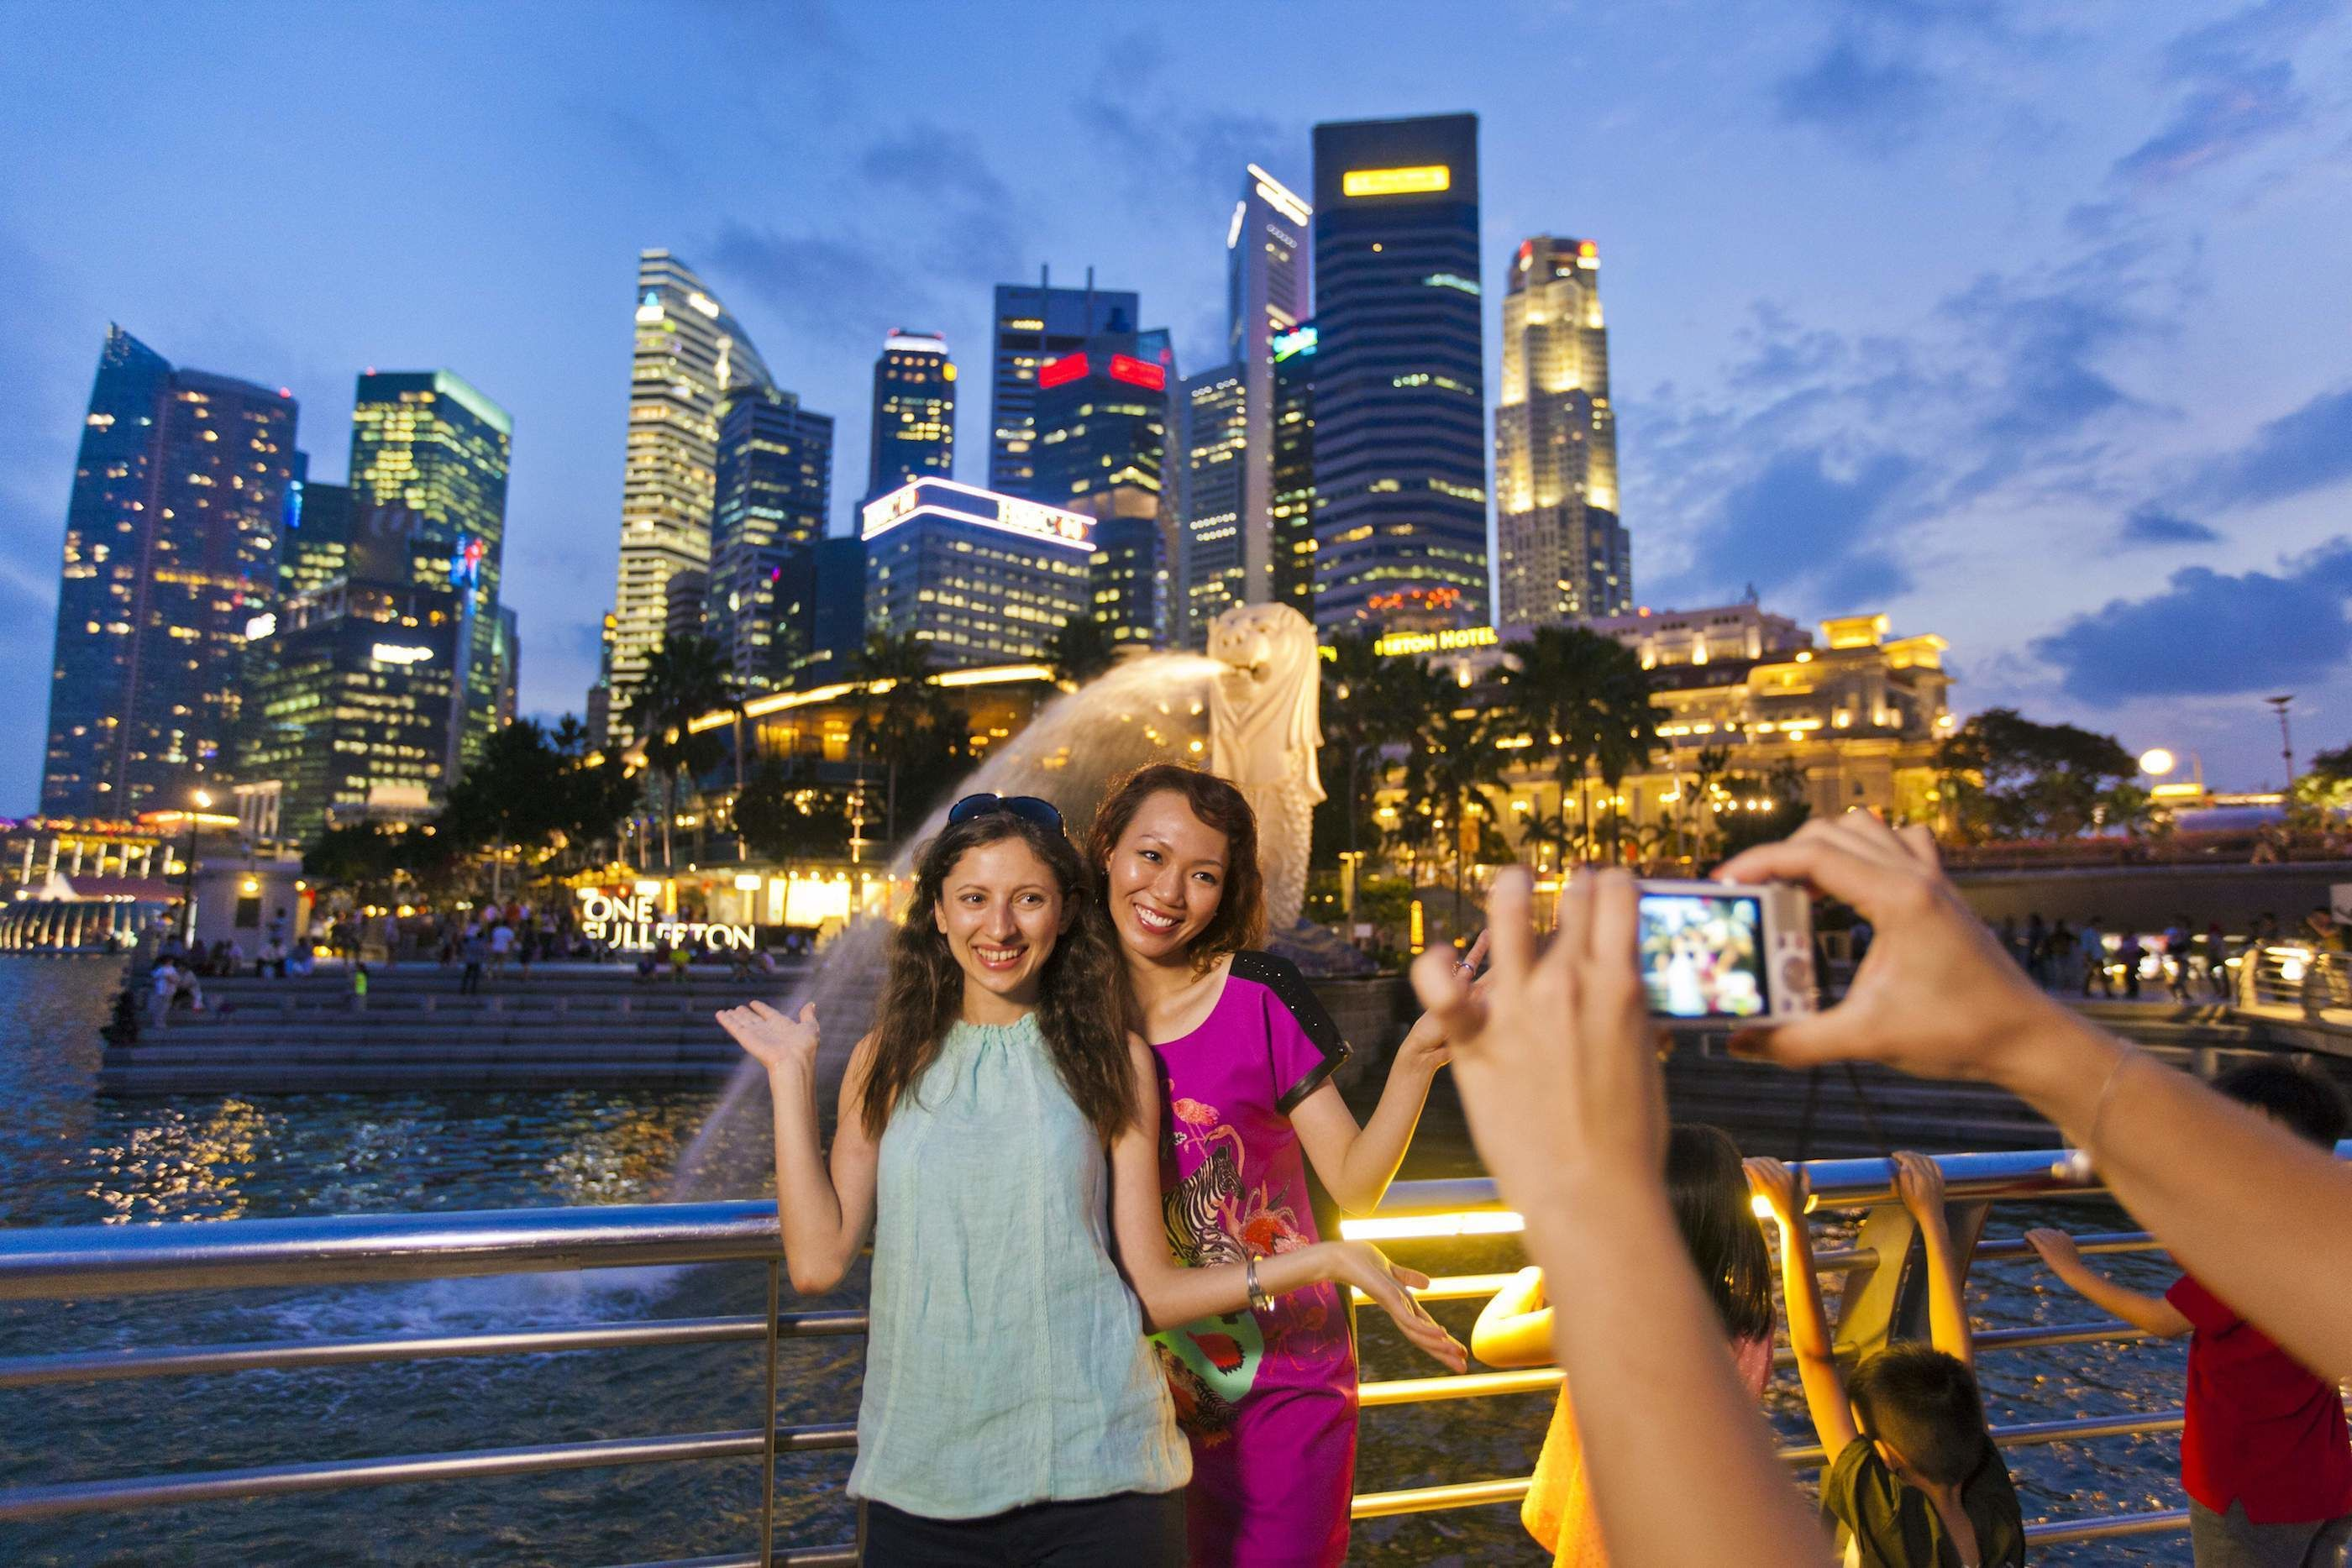 Women posing for a photo at night with the city in the background in Singapore